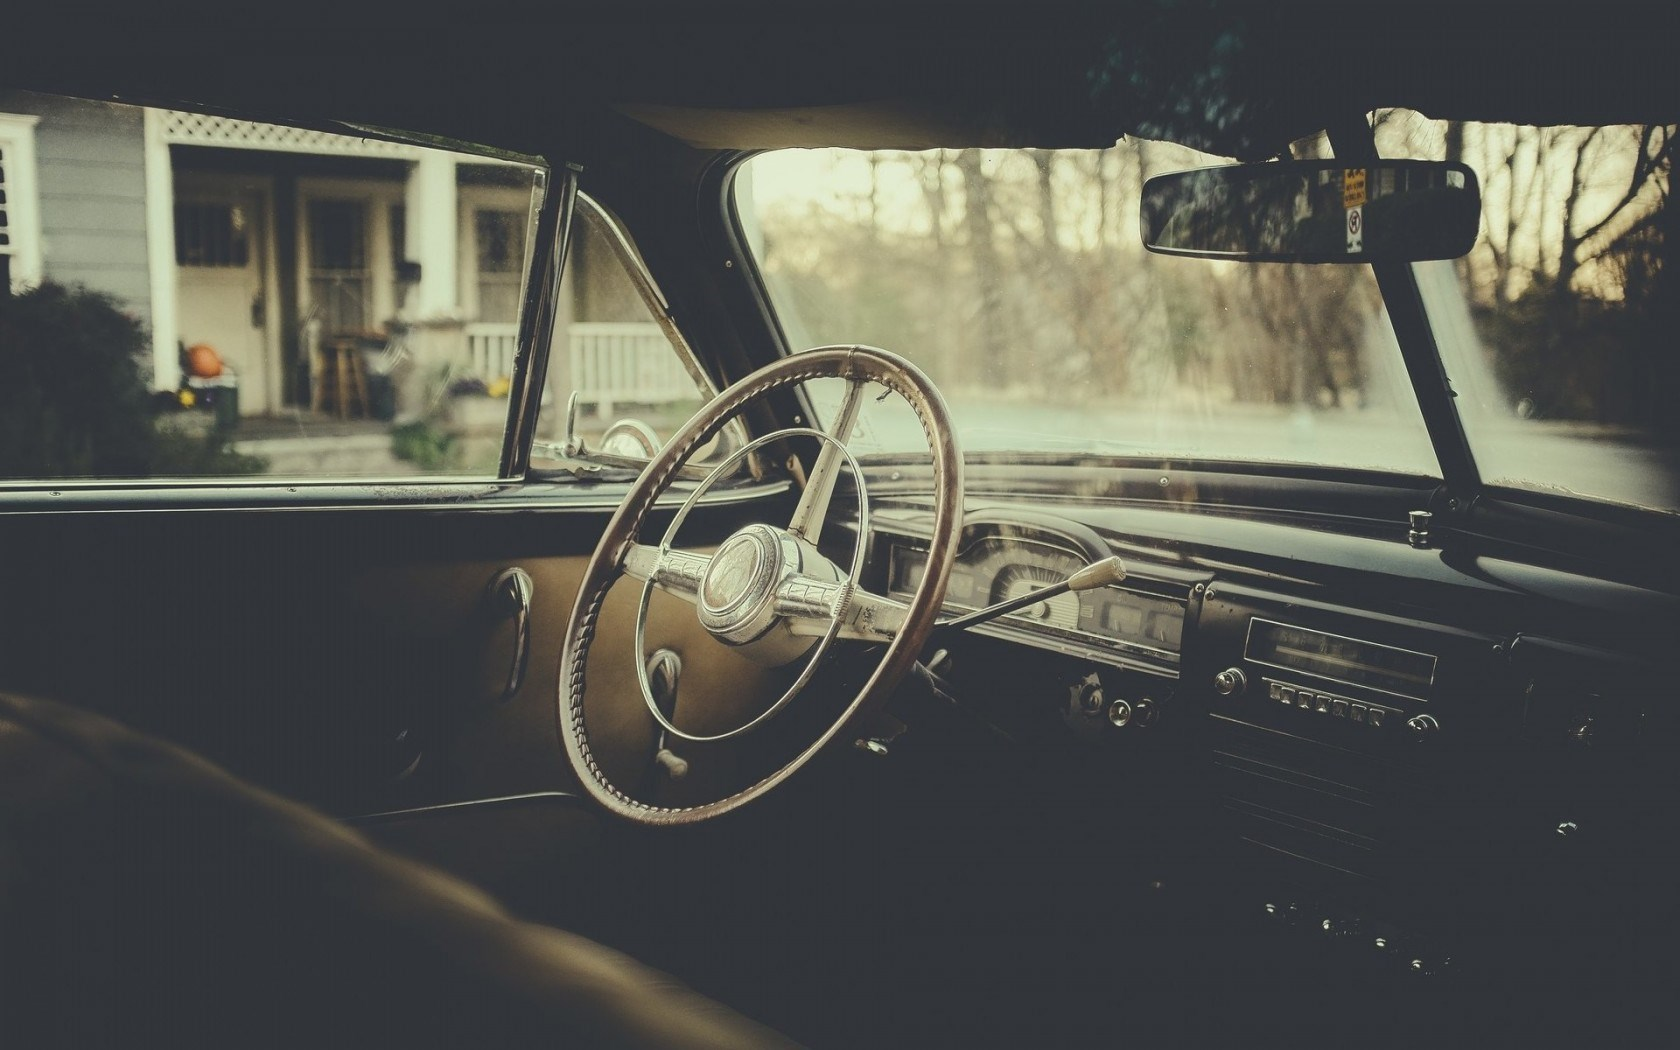 car classic interior steering wheel wallpaper 1680x1050 16385. Black Bedroom Furniture Sets. Home Design Ideas